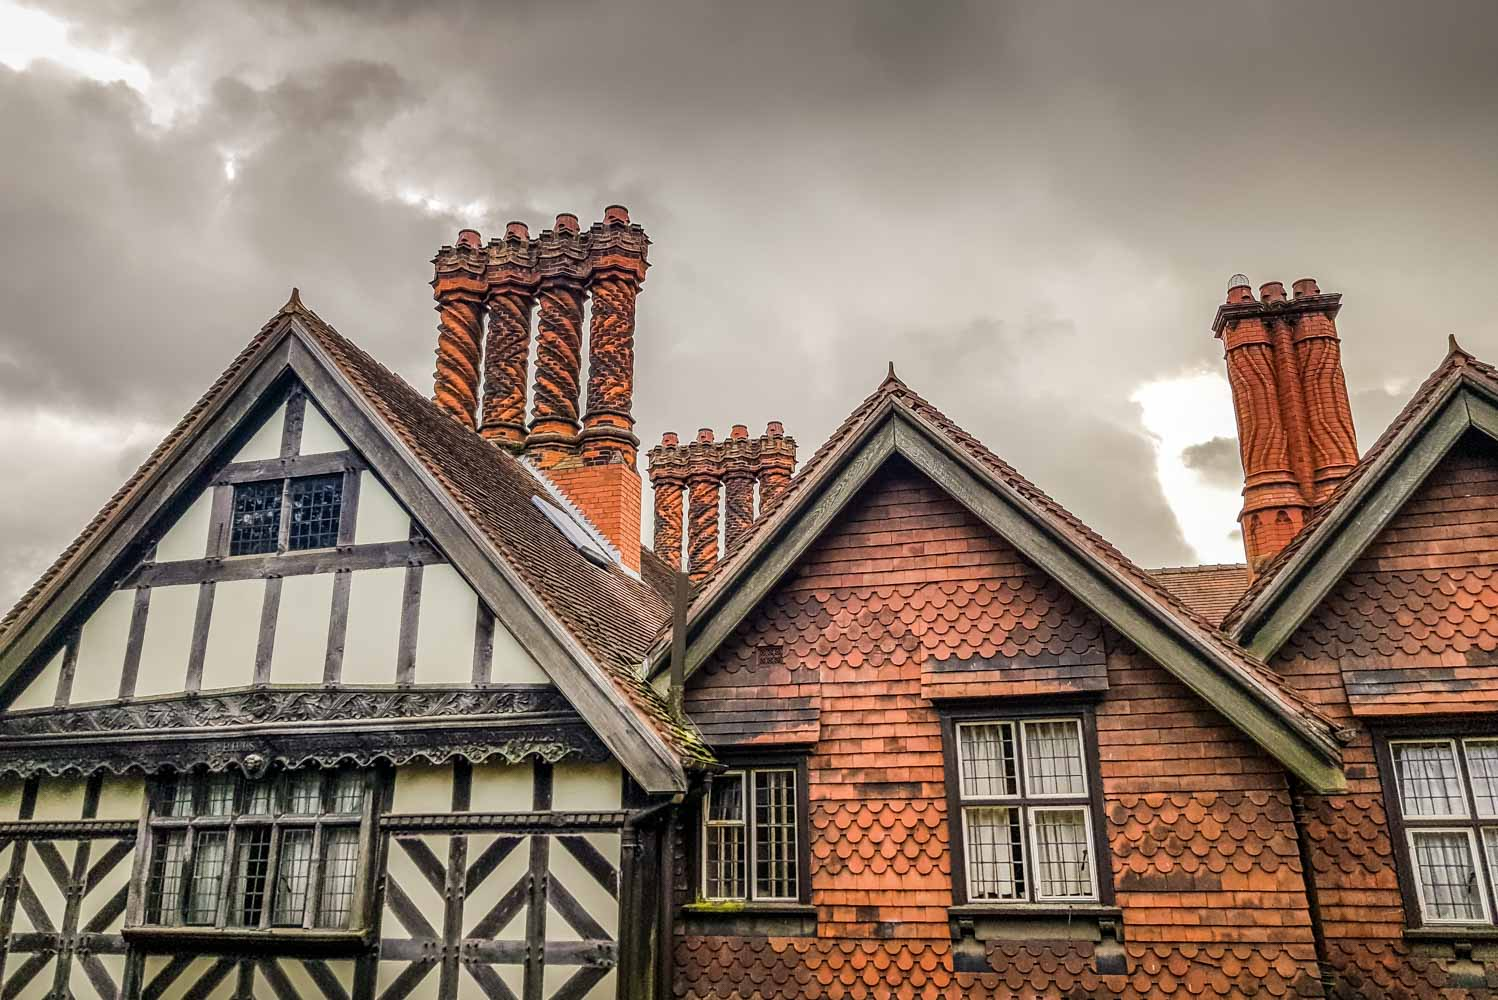 20191006_142834 A Walk Around Wightwick Manor and Gardens